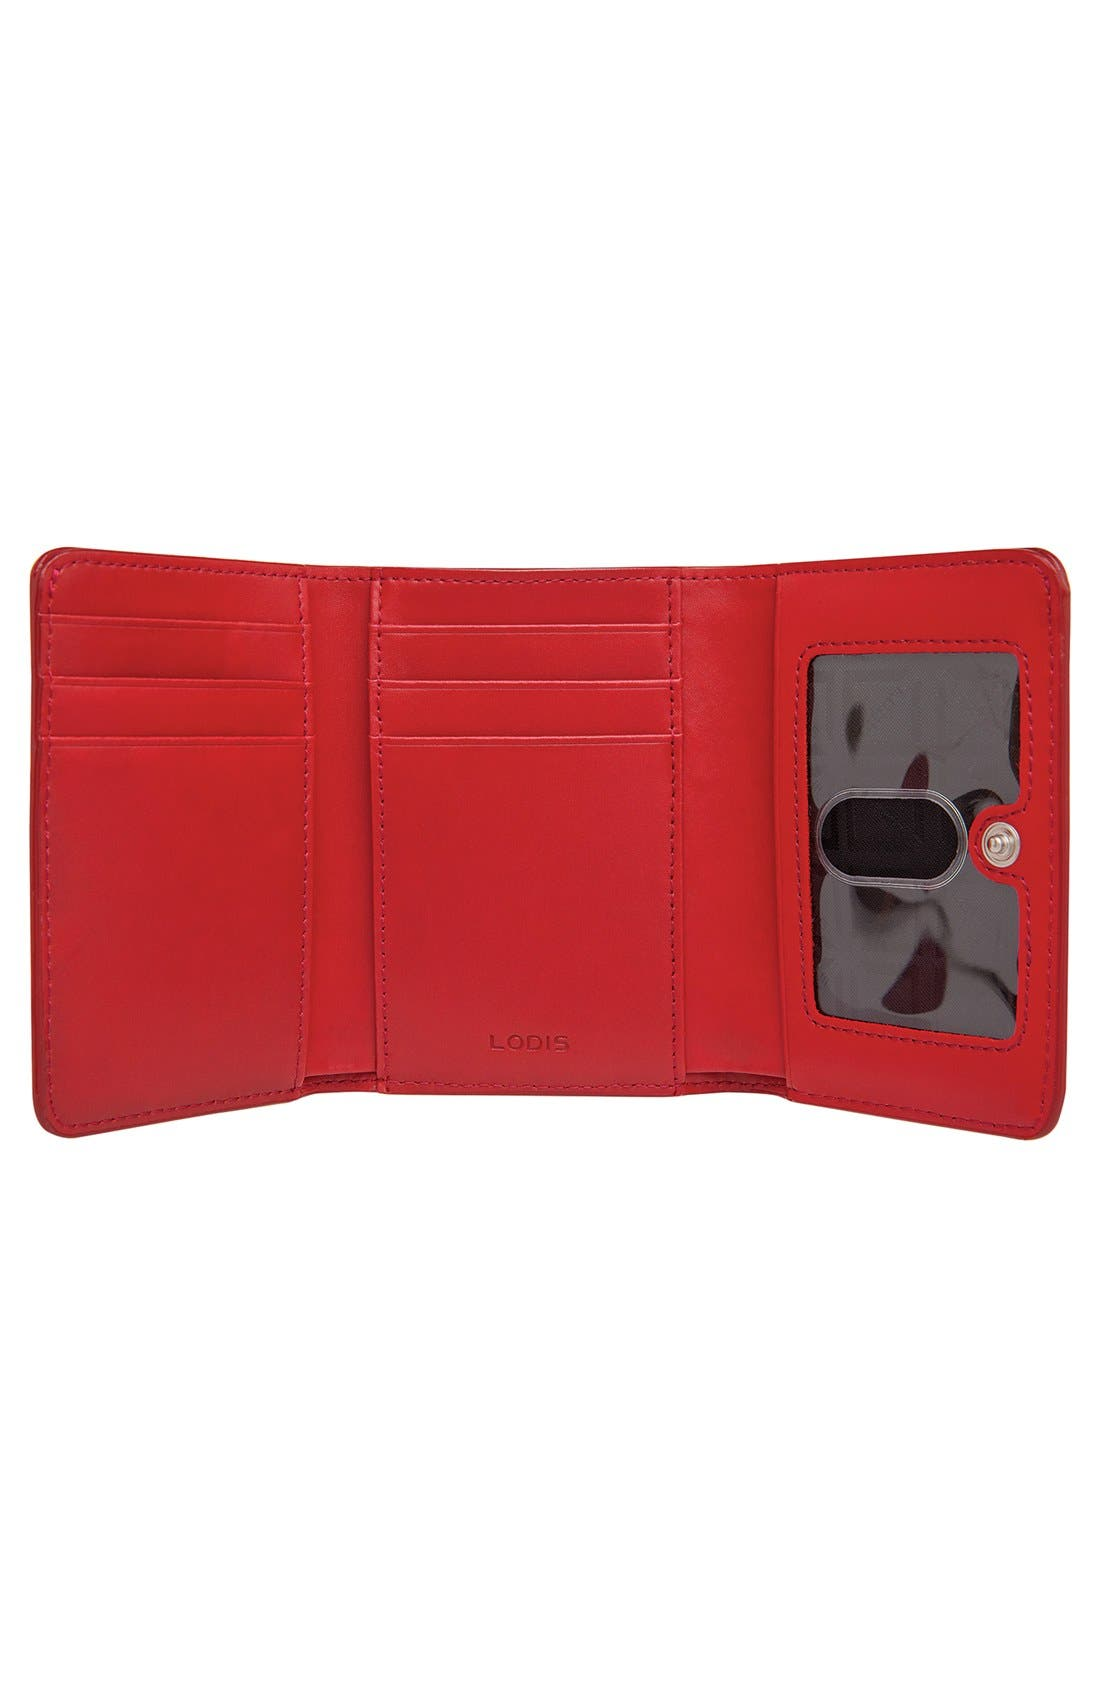 Lodis 'Audrey - Mallory' Leather French Wallet,                             Alternate thumbnail 3, color,                             001